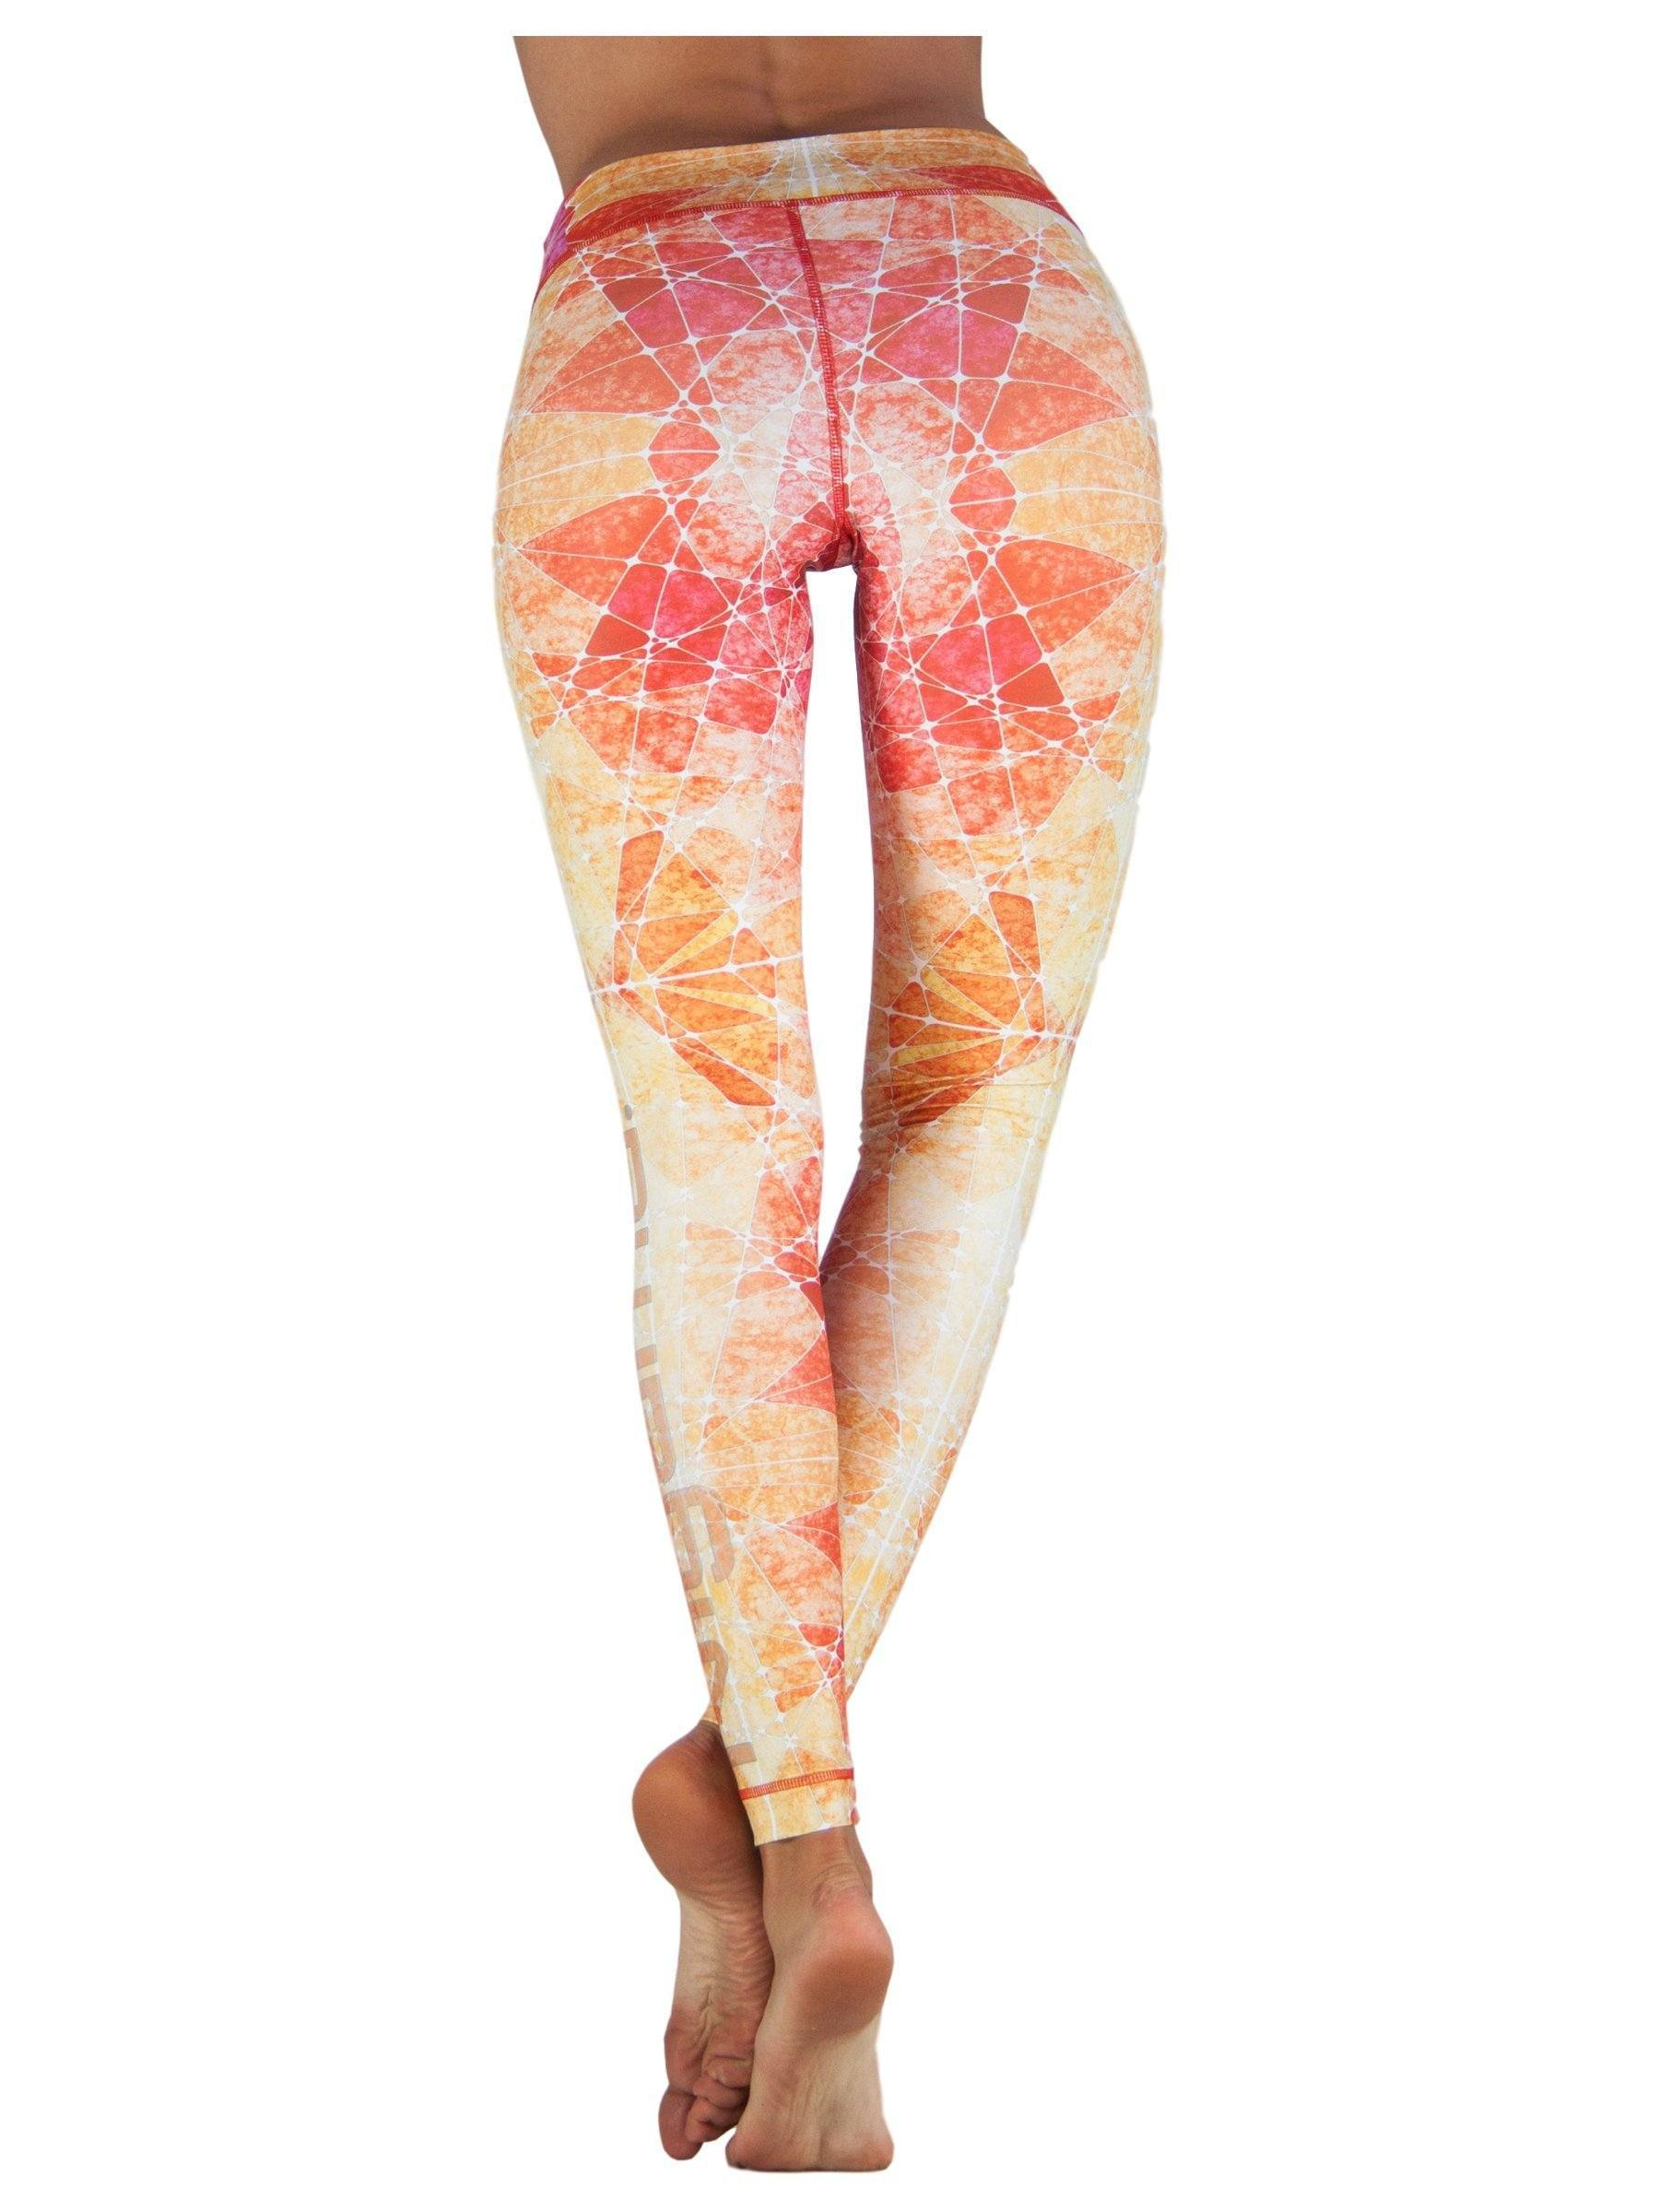 Sunset by Niyama - High Quality, , Yoga Legging for Movement Artists.